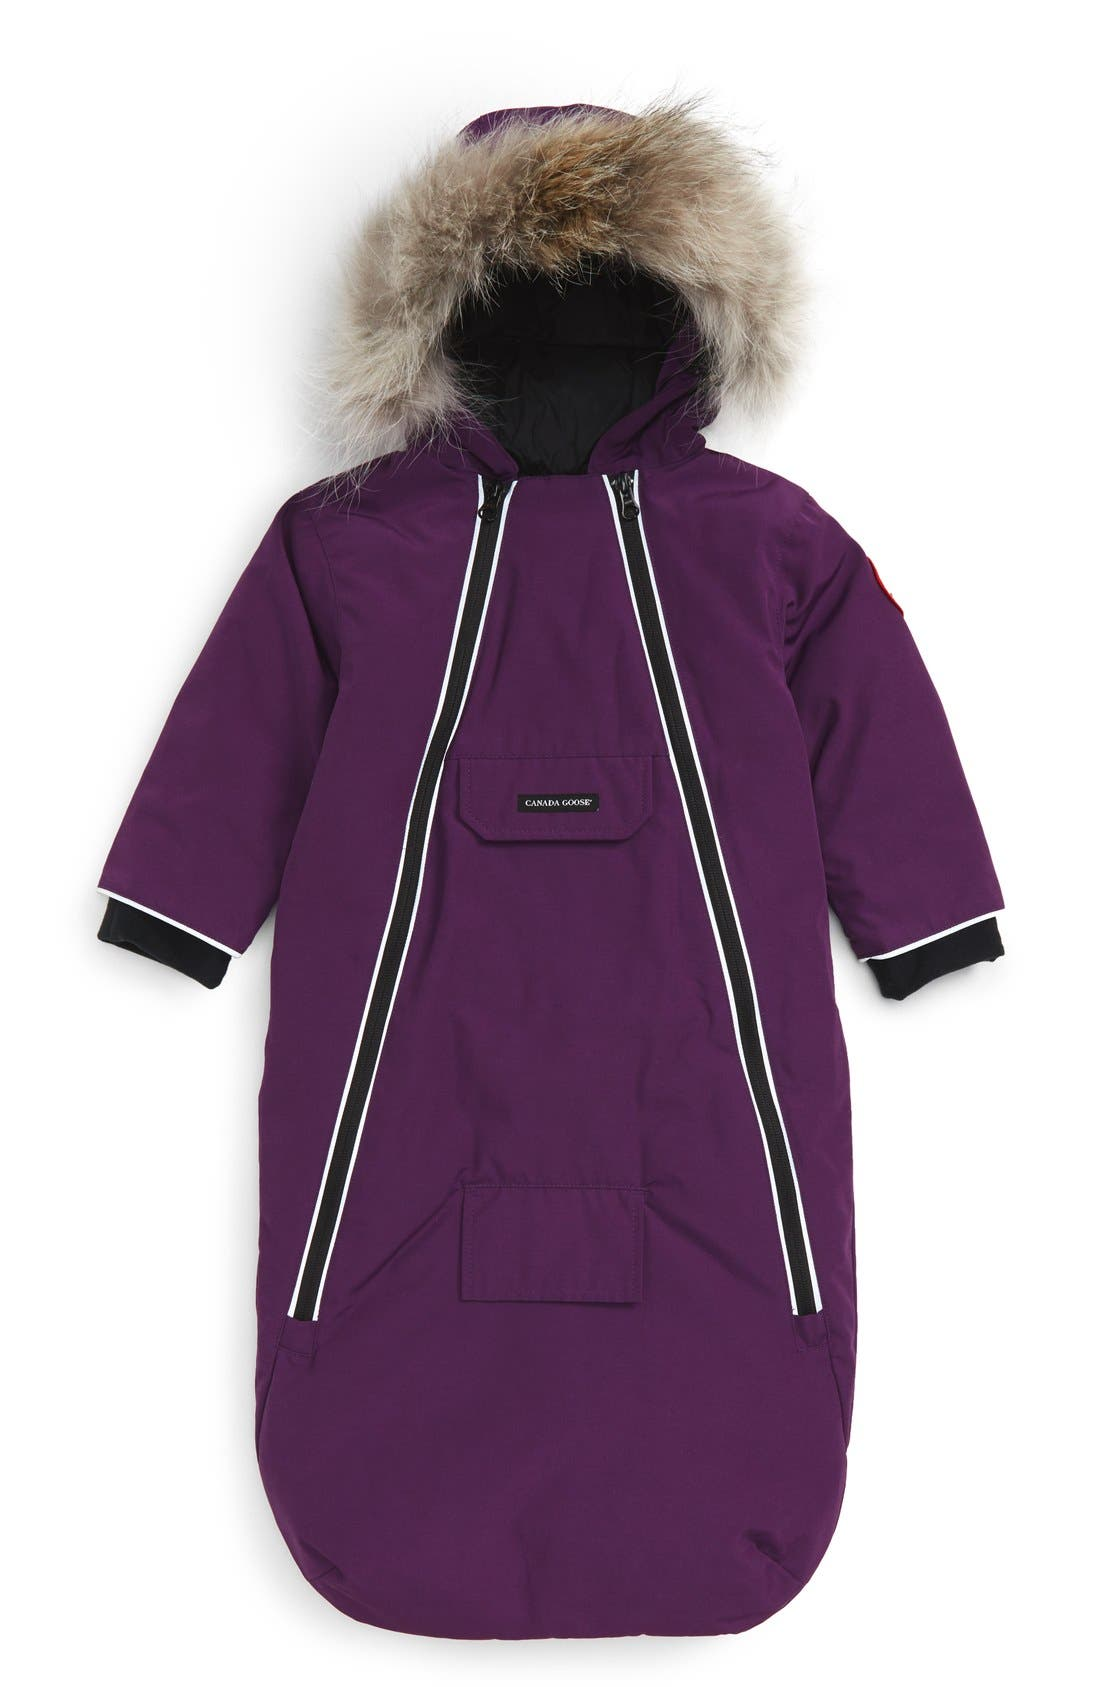 'Bunny' Hooded Bunting with Genuine Coyote Fur Trim,                             Main thumbnail 1, color,                             ARCTIC DUSK